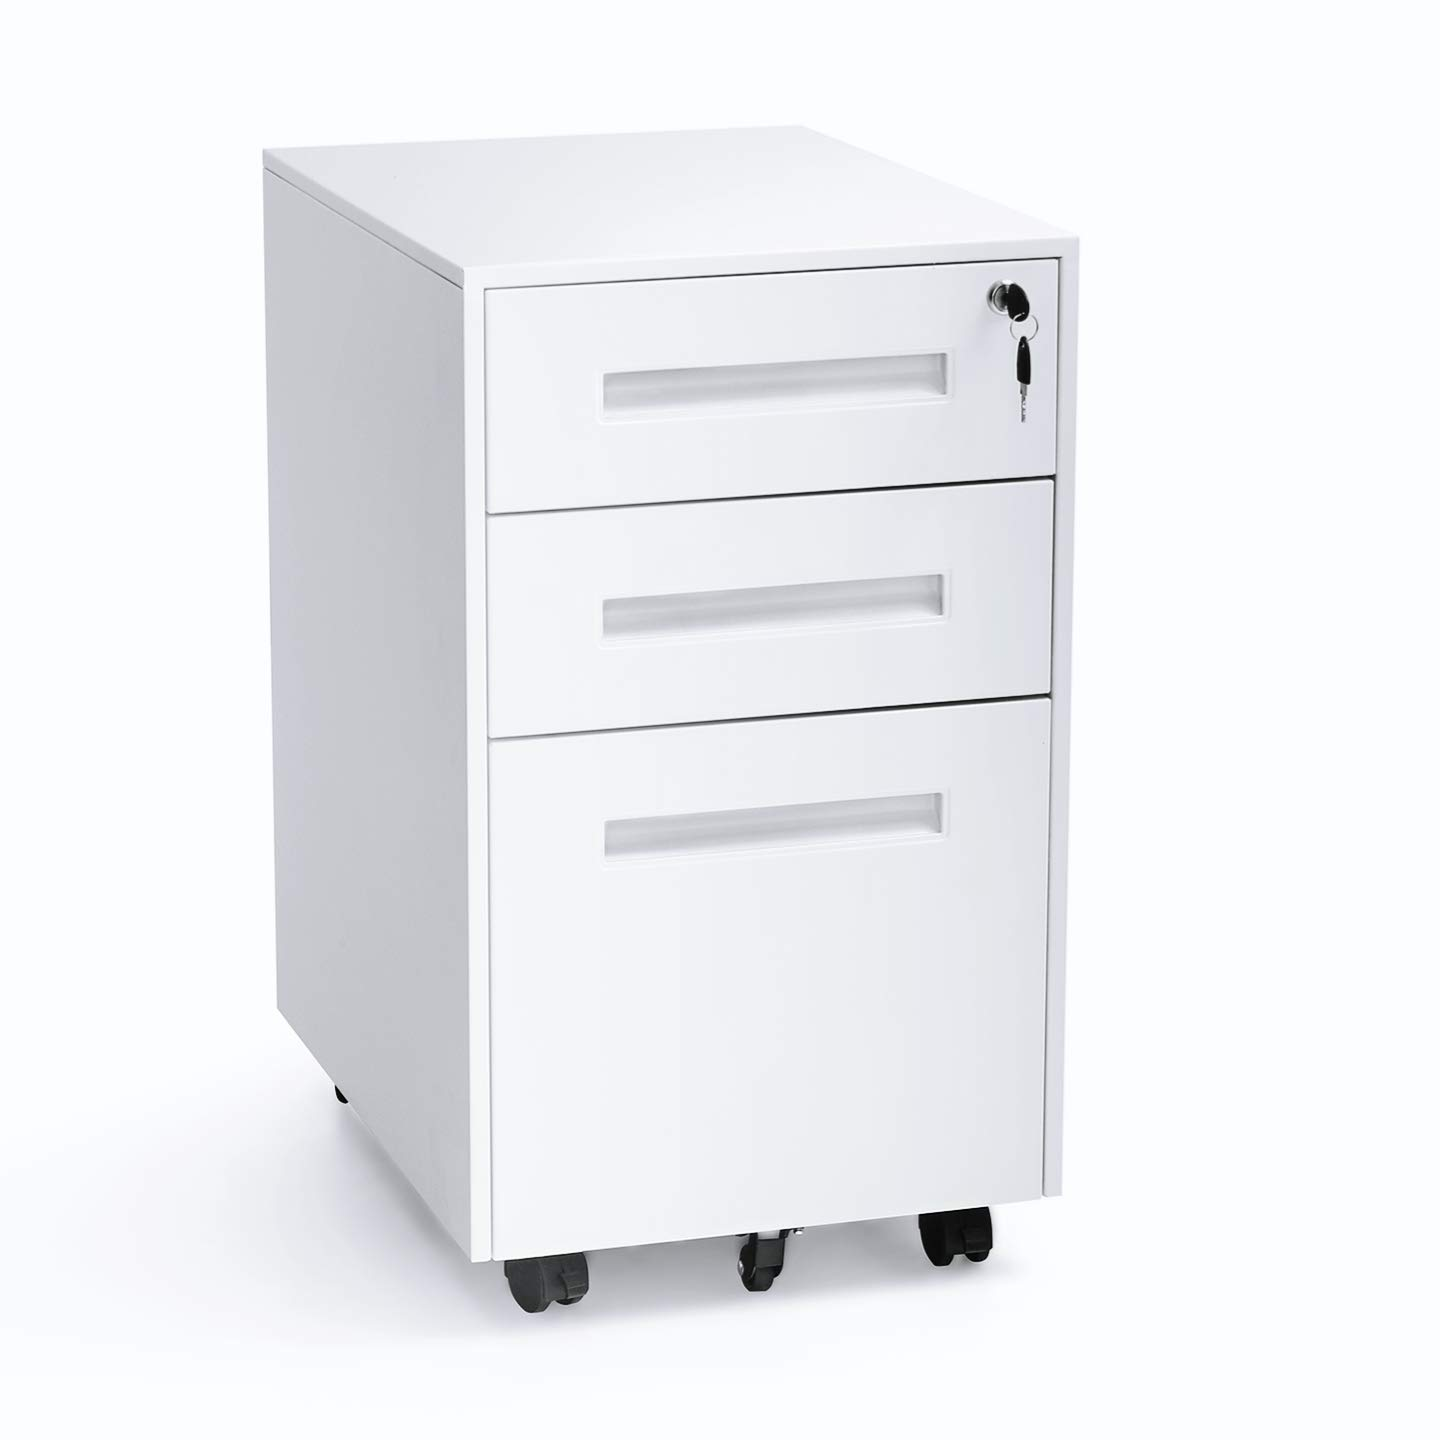 INTERGREAT Mobility Cabinet for Closet/Office, Rolling Filing Cabinet 3 Drawers Fully Assembled White B by INTERGREAT